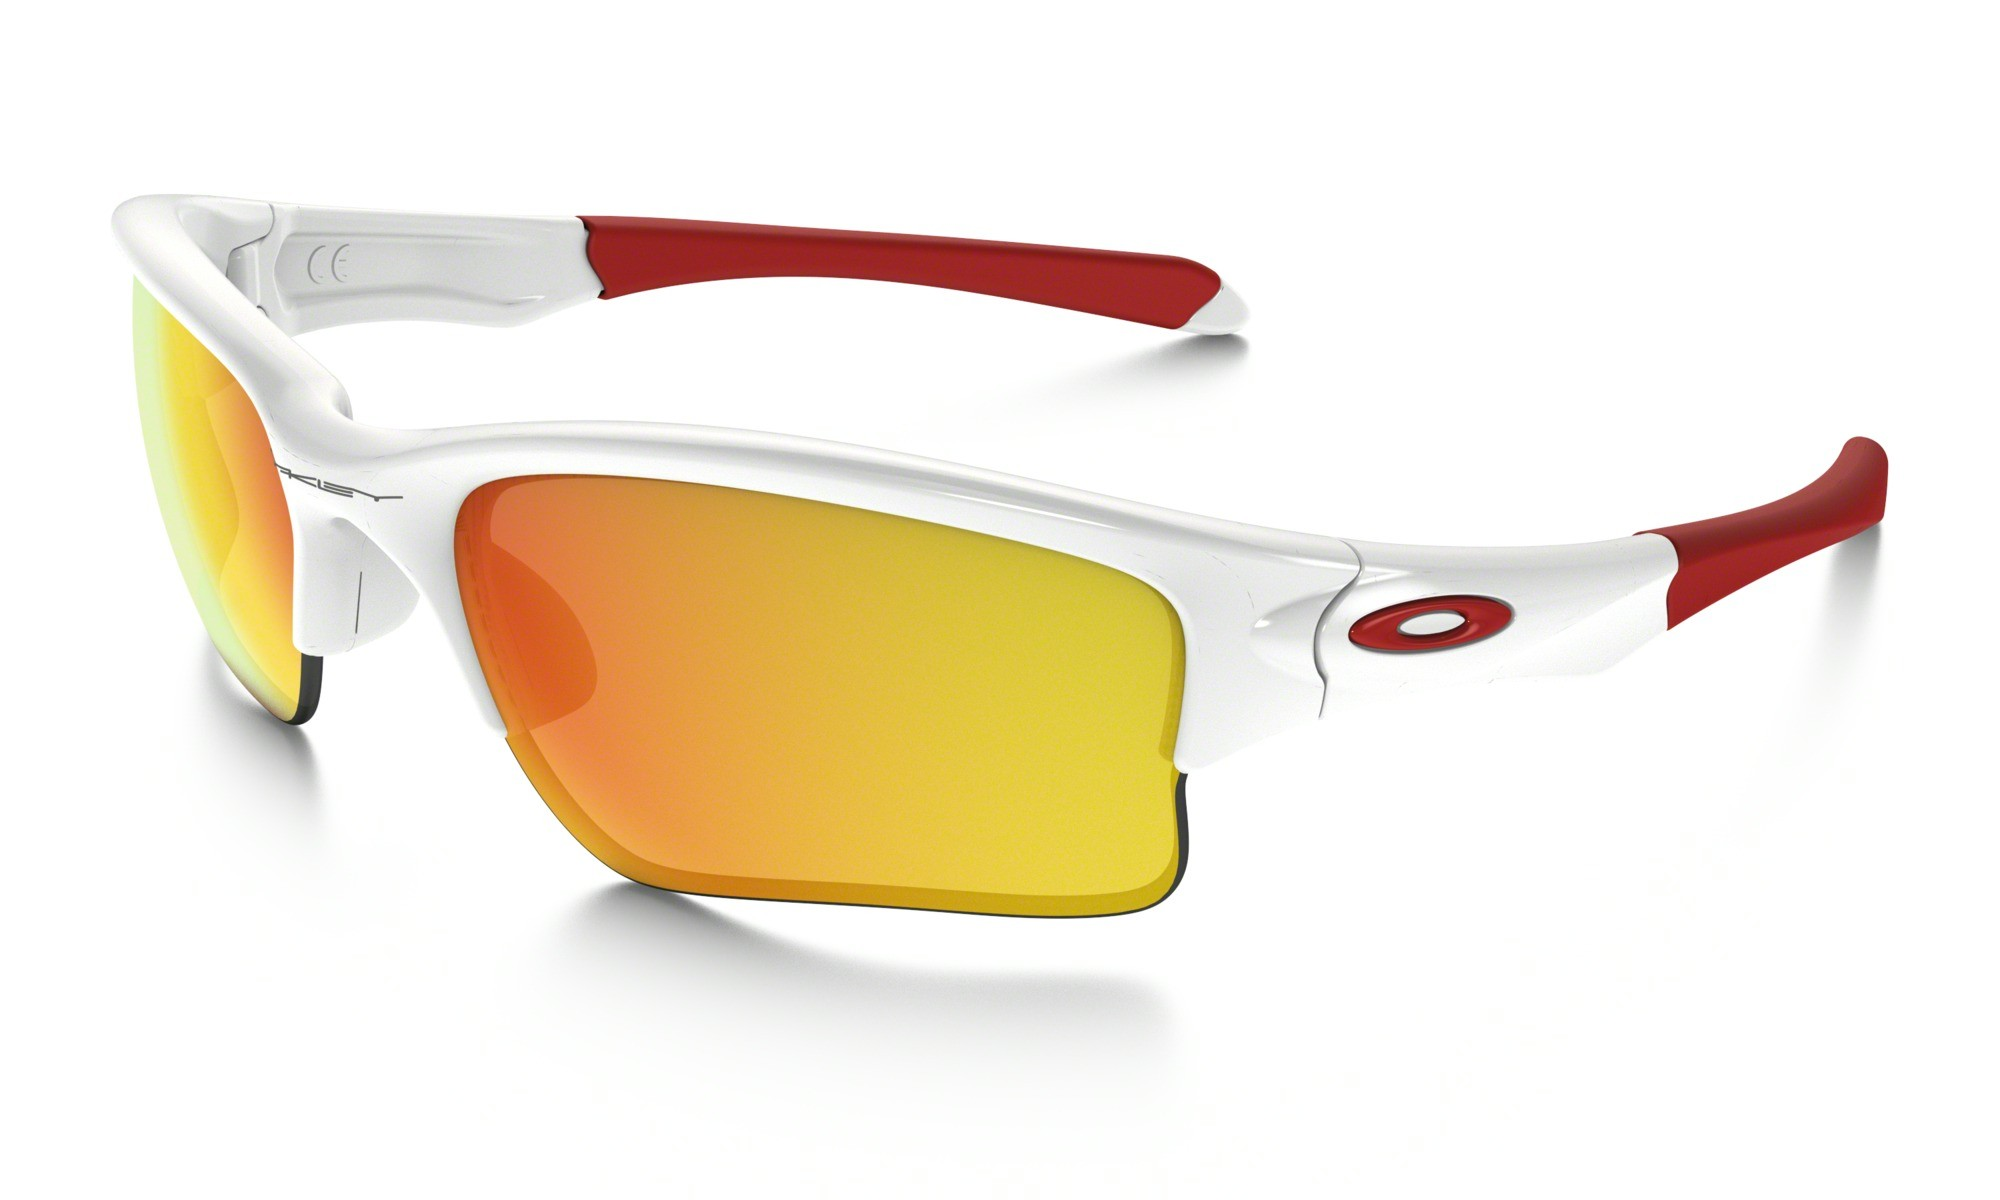 a69e65081e Fake Oakley Pit Boss Sunglasses Orange « One More Soul